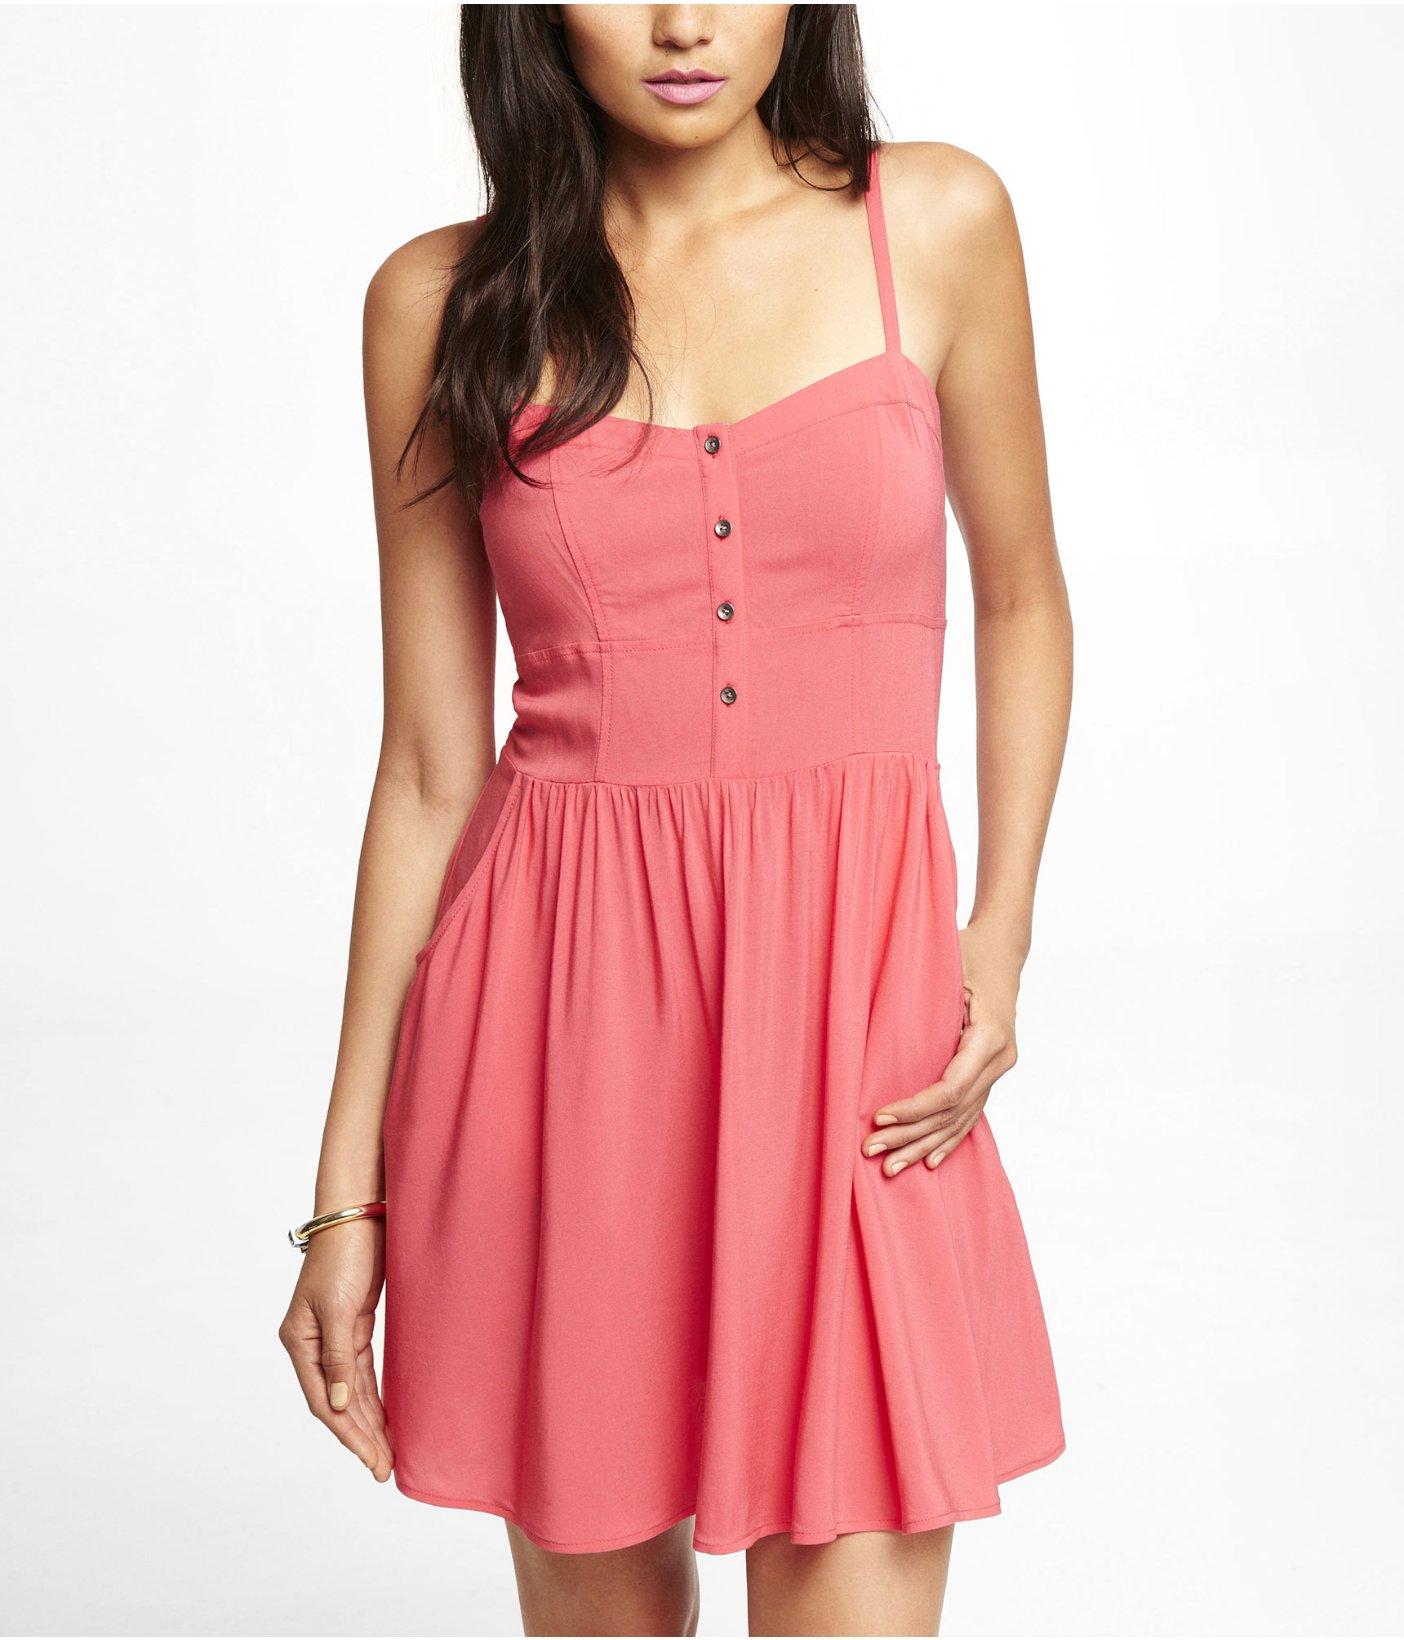 Express Pink Cami Sundress in Pink | Lyst